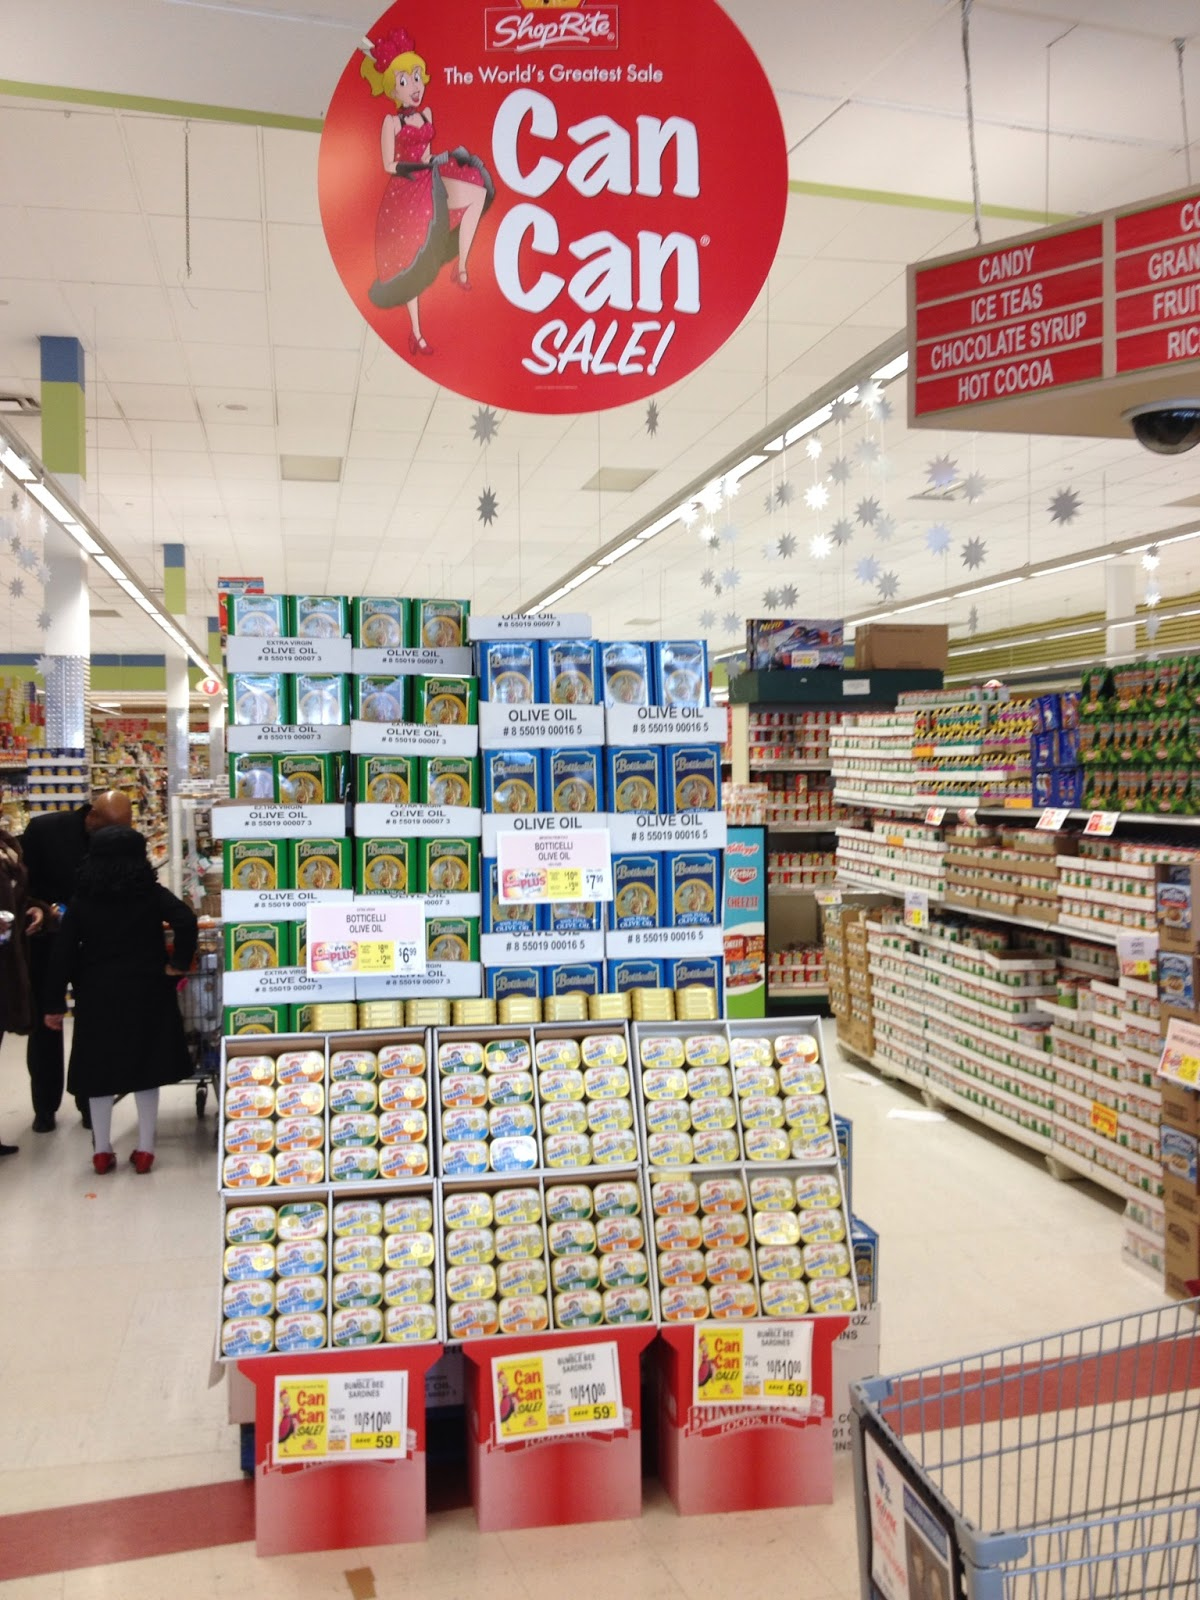 Shoprite can can sale 2015 - A 2013 Can Can Sale Display At The Shoprite In Englewood